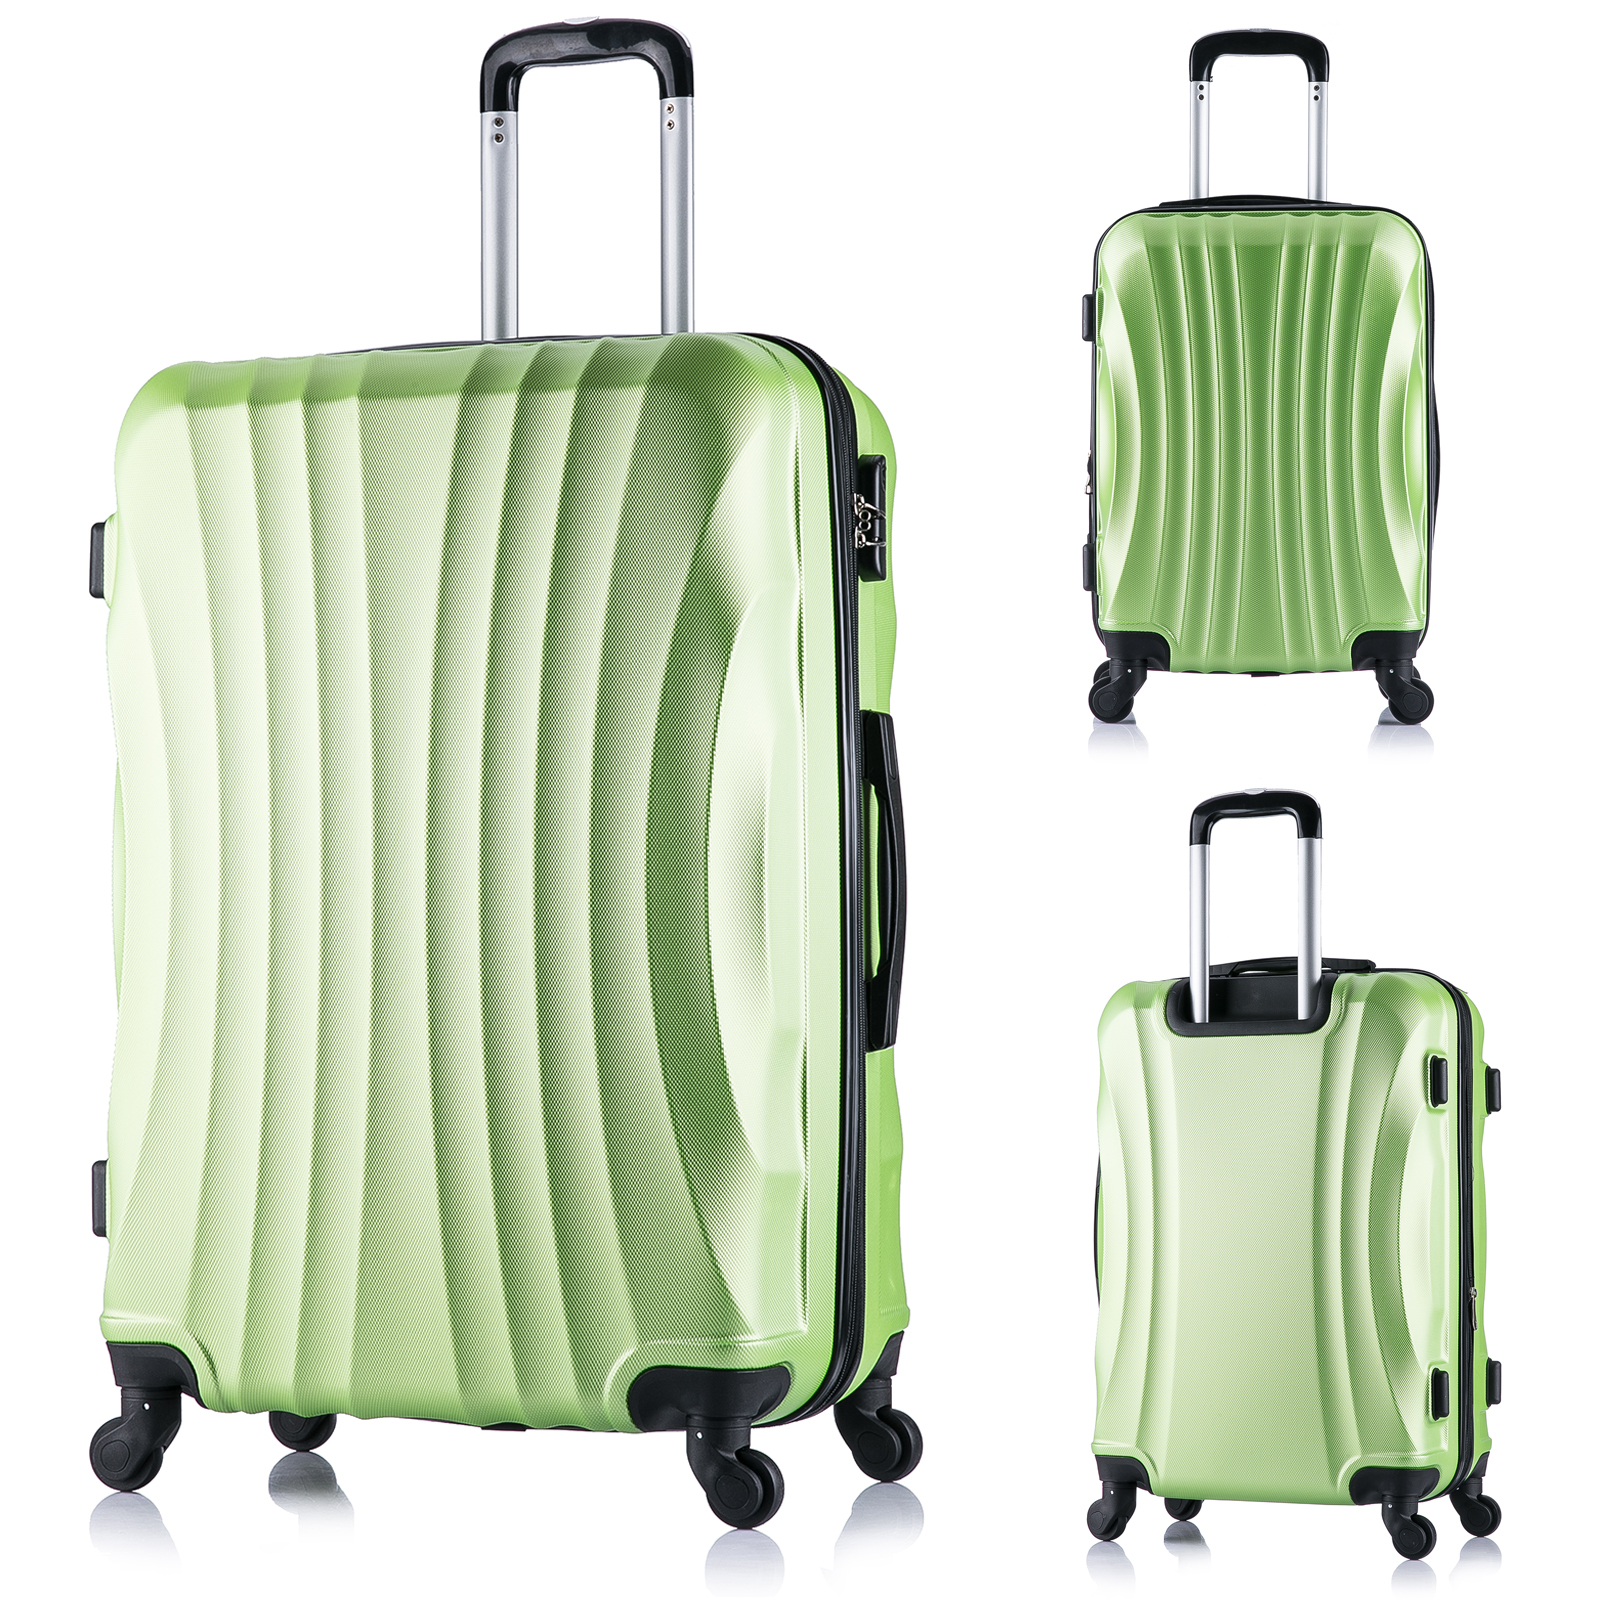 valise bagage de voyage l ger avec 4 roulettes taille m xl f149 ebay. Black Bedroom Furniture Sets. Home Design Ideas